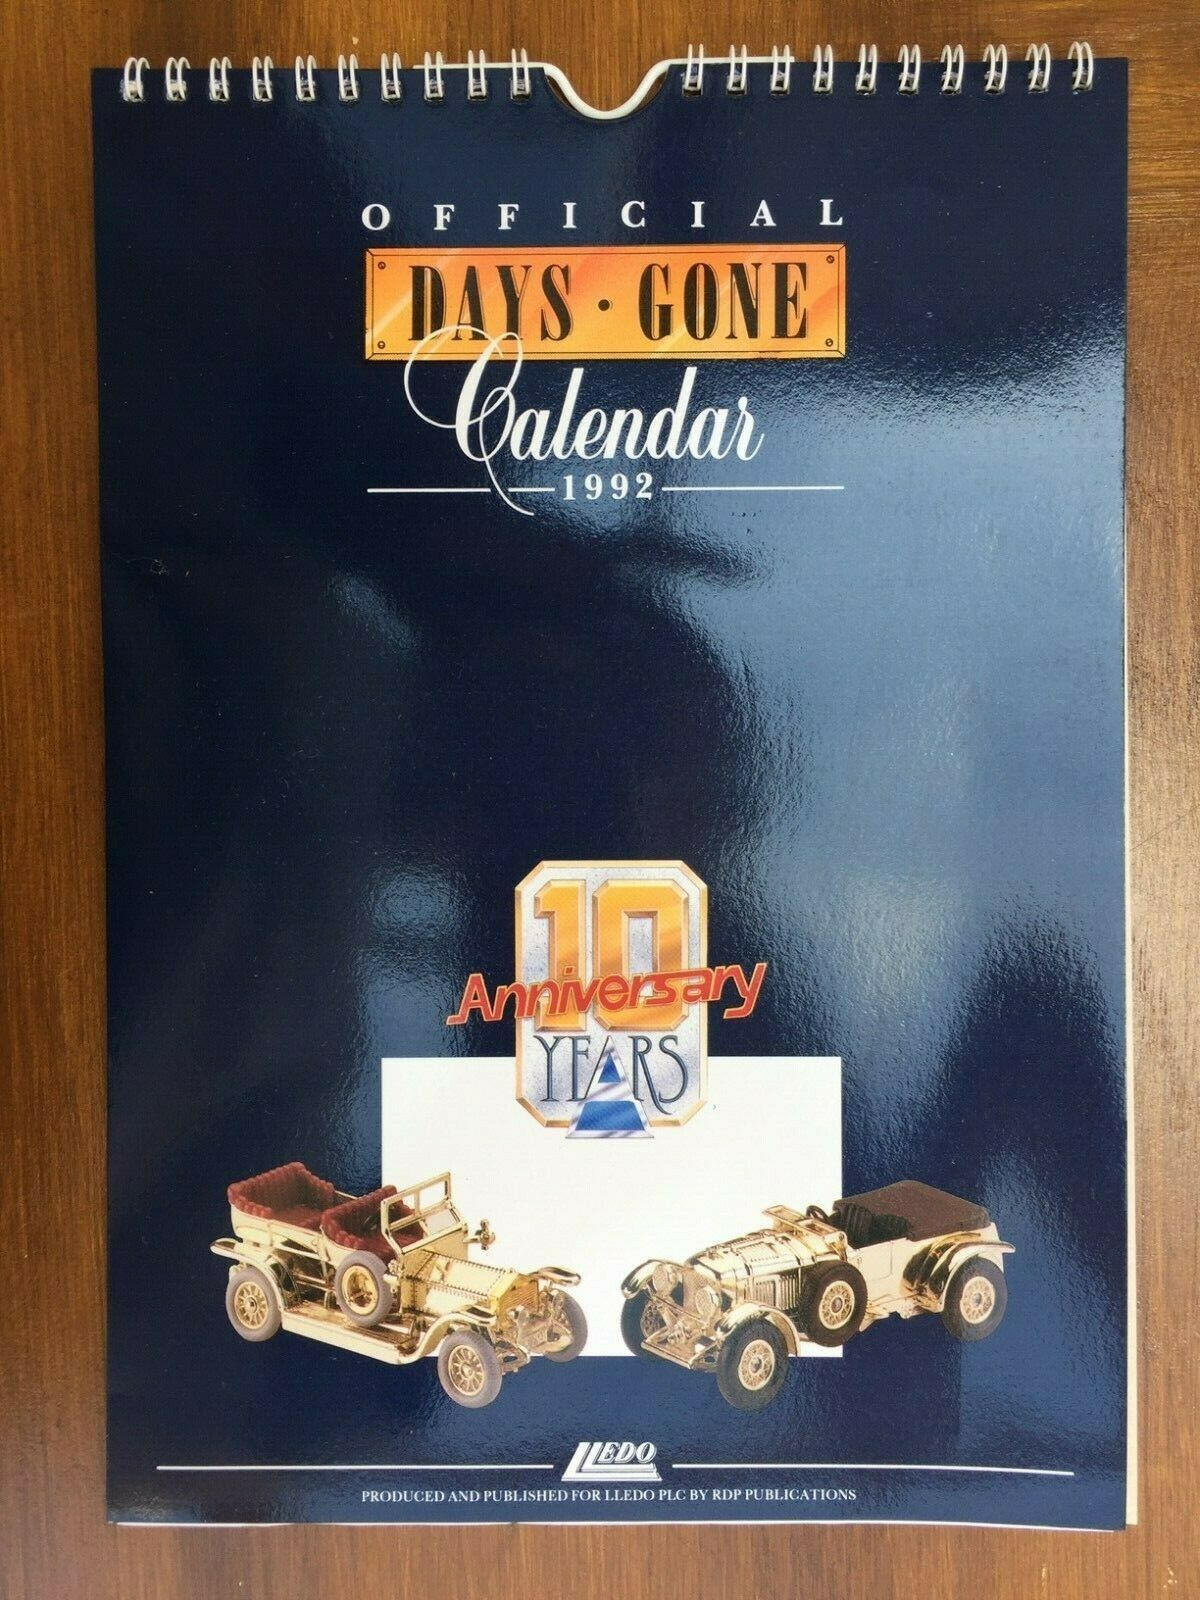 LLEDO 1992 OFFICIAL DAYS GONE Colour Calendar 10 Anniversary Years Edition